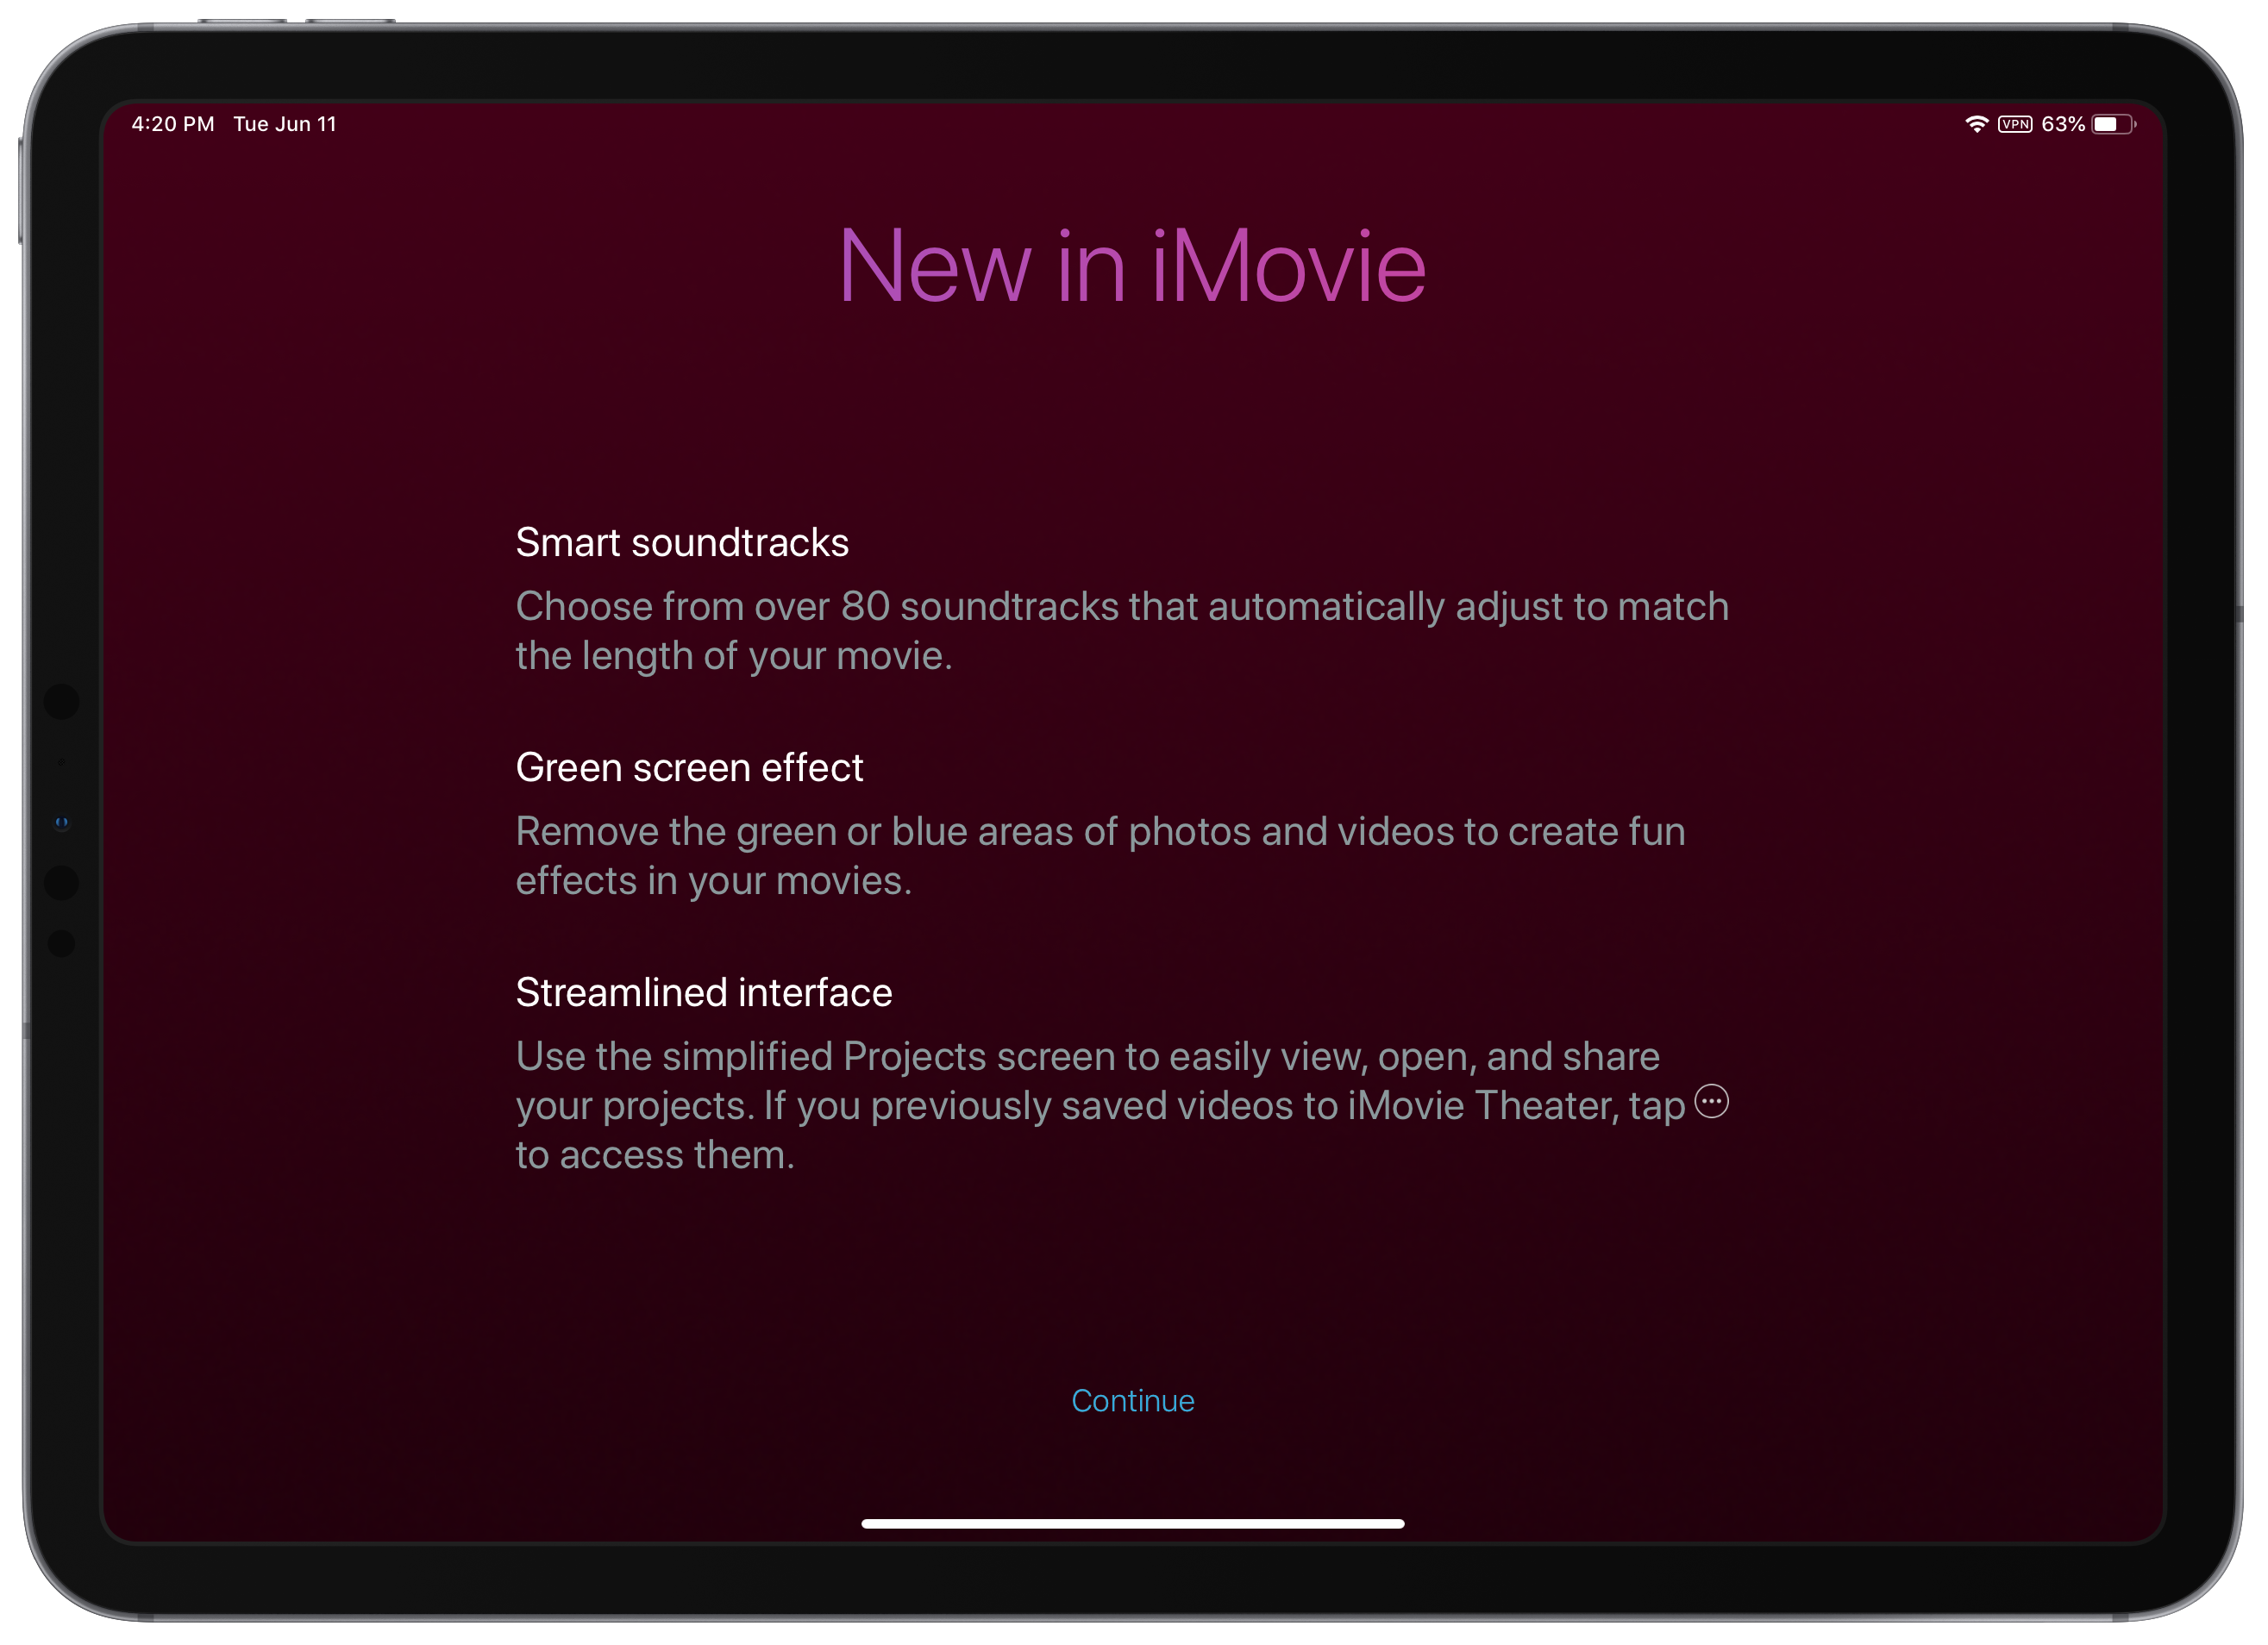 iMovie 2.2.7 Brings Green Screen Editing, New Soundtracks, More